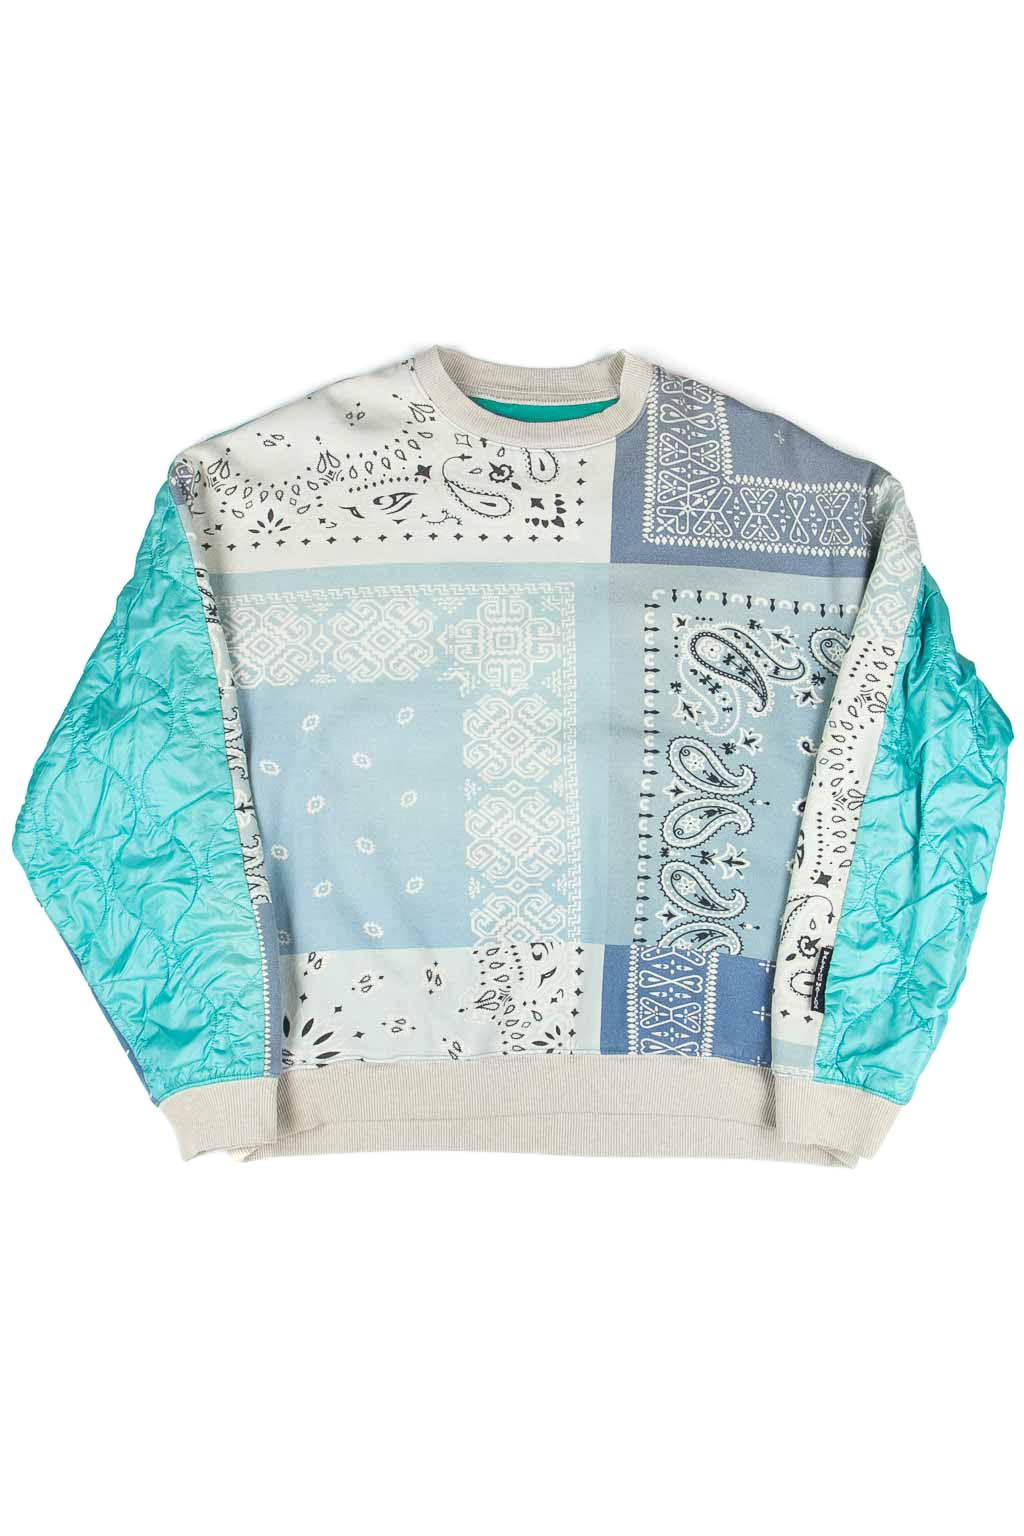 Kapital Fleecy Knit Bandana BIVOUAC BIG Sweater - Blue